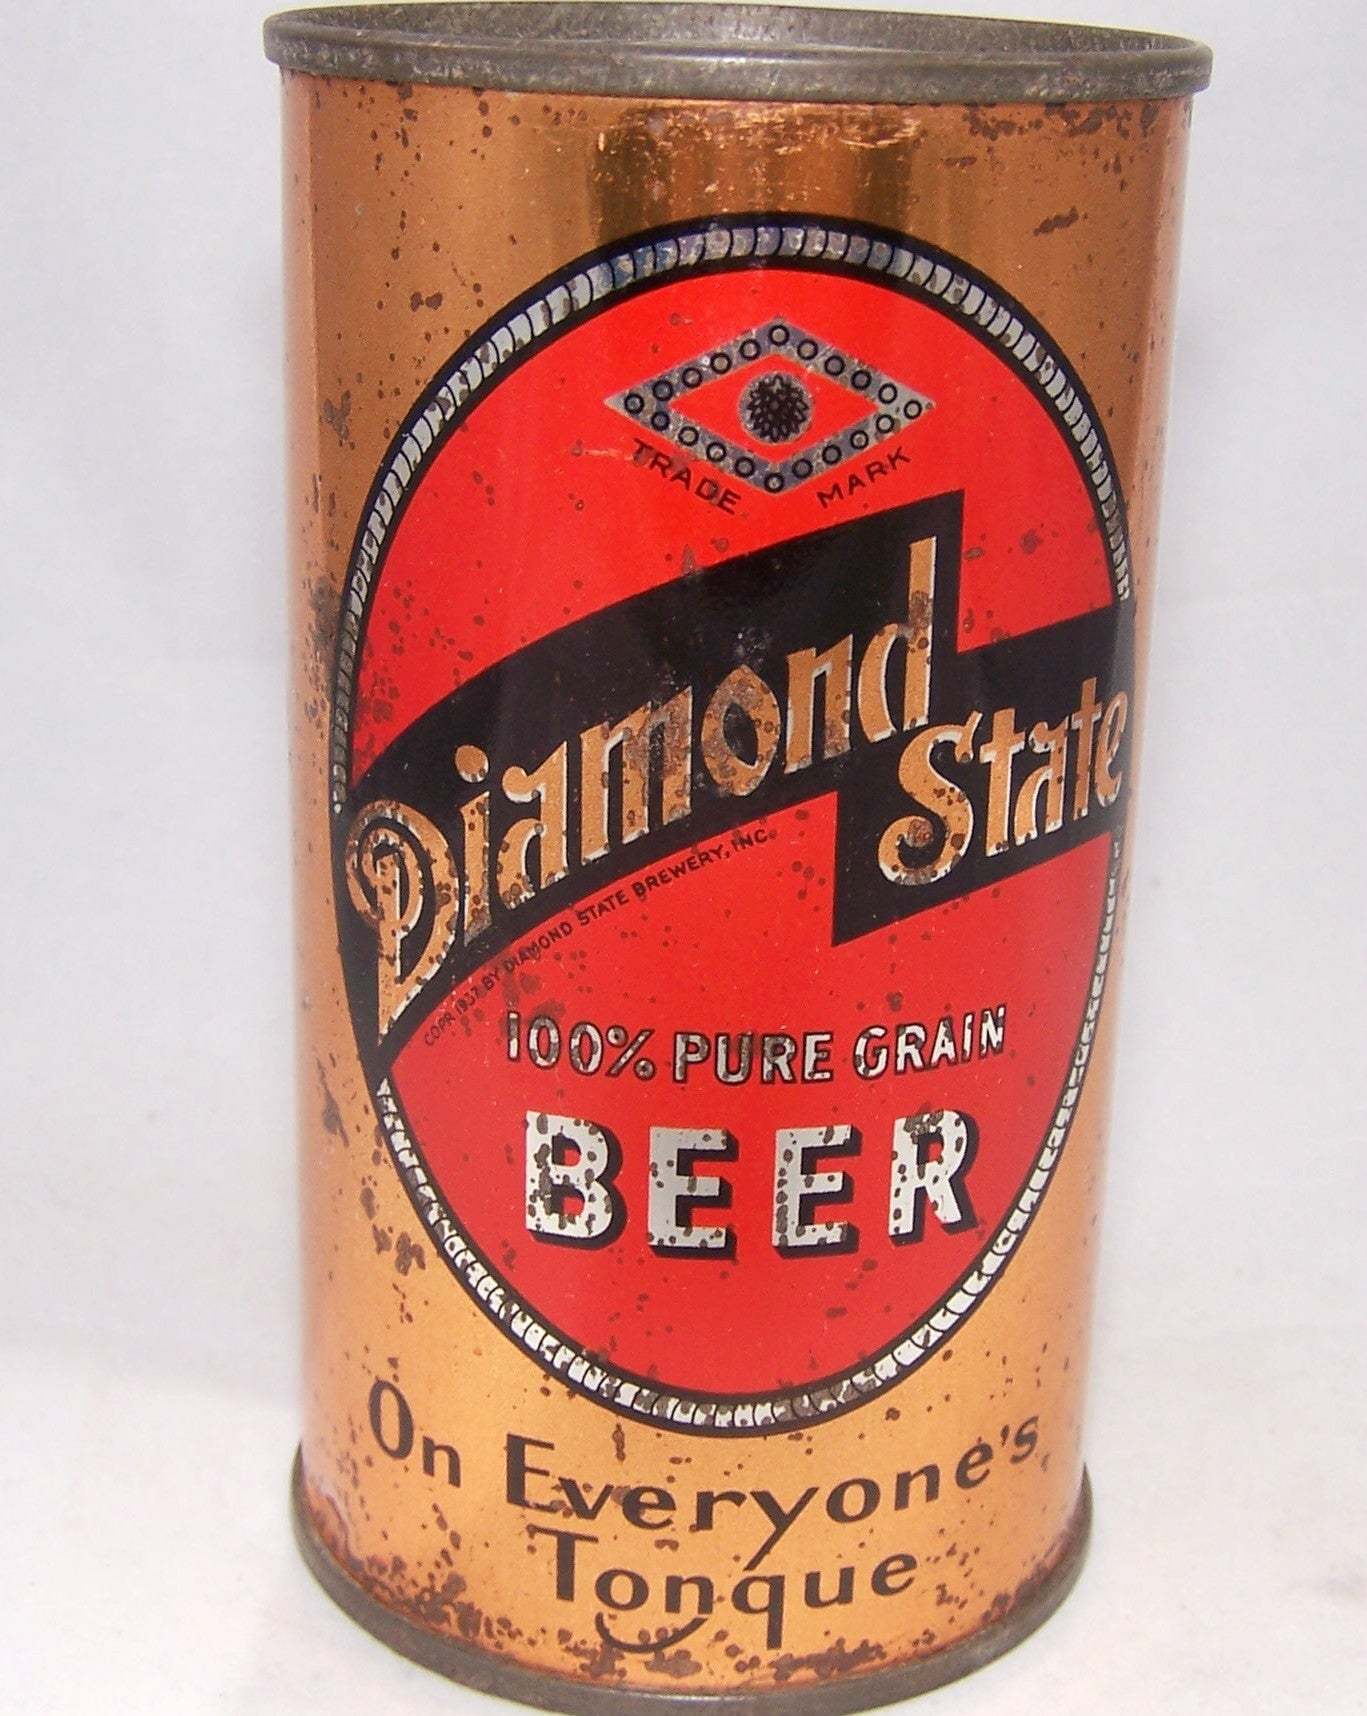 Diamond State Pure Grain Beer, Lilek # 195, Grade 1-/2+ Sold on 12/07/16